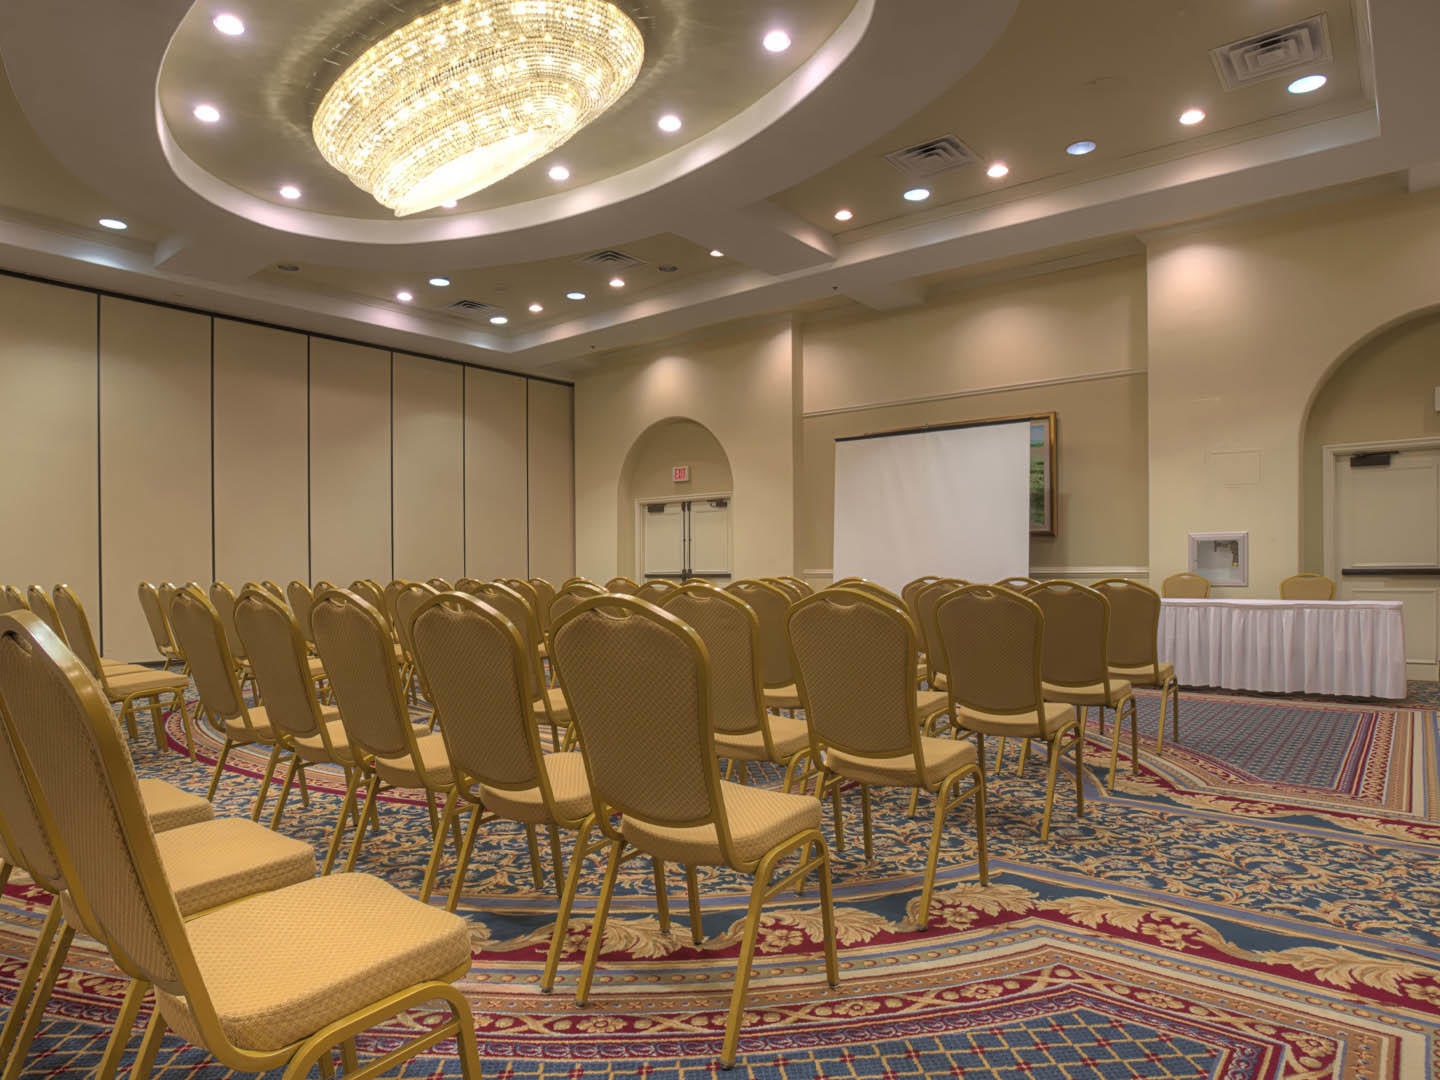 conference room with rows of chairs and projector